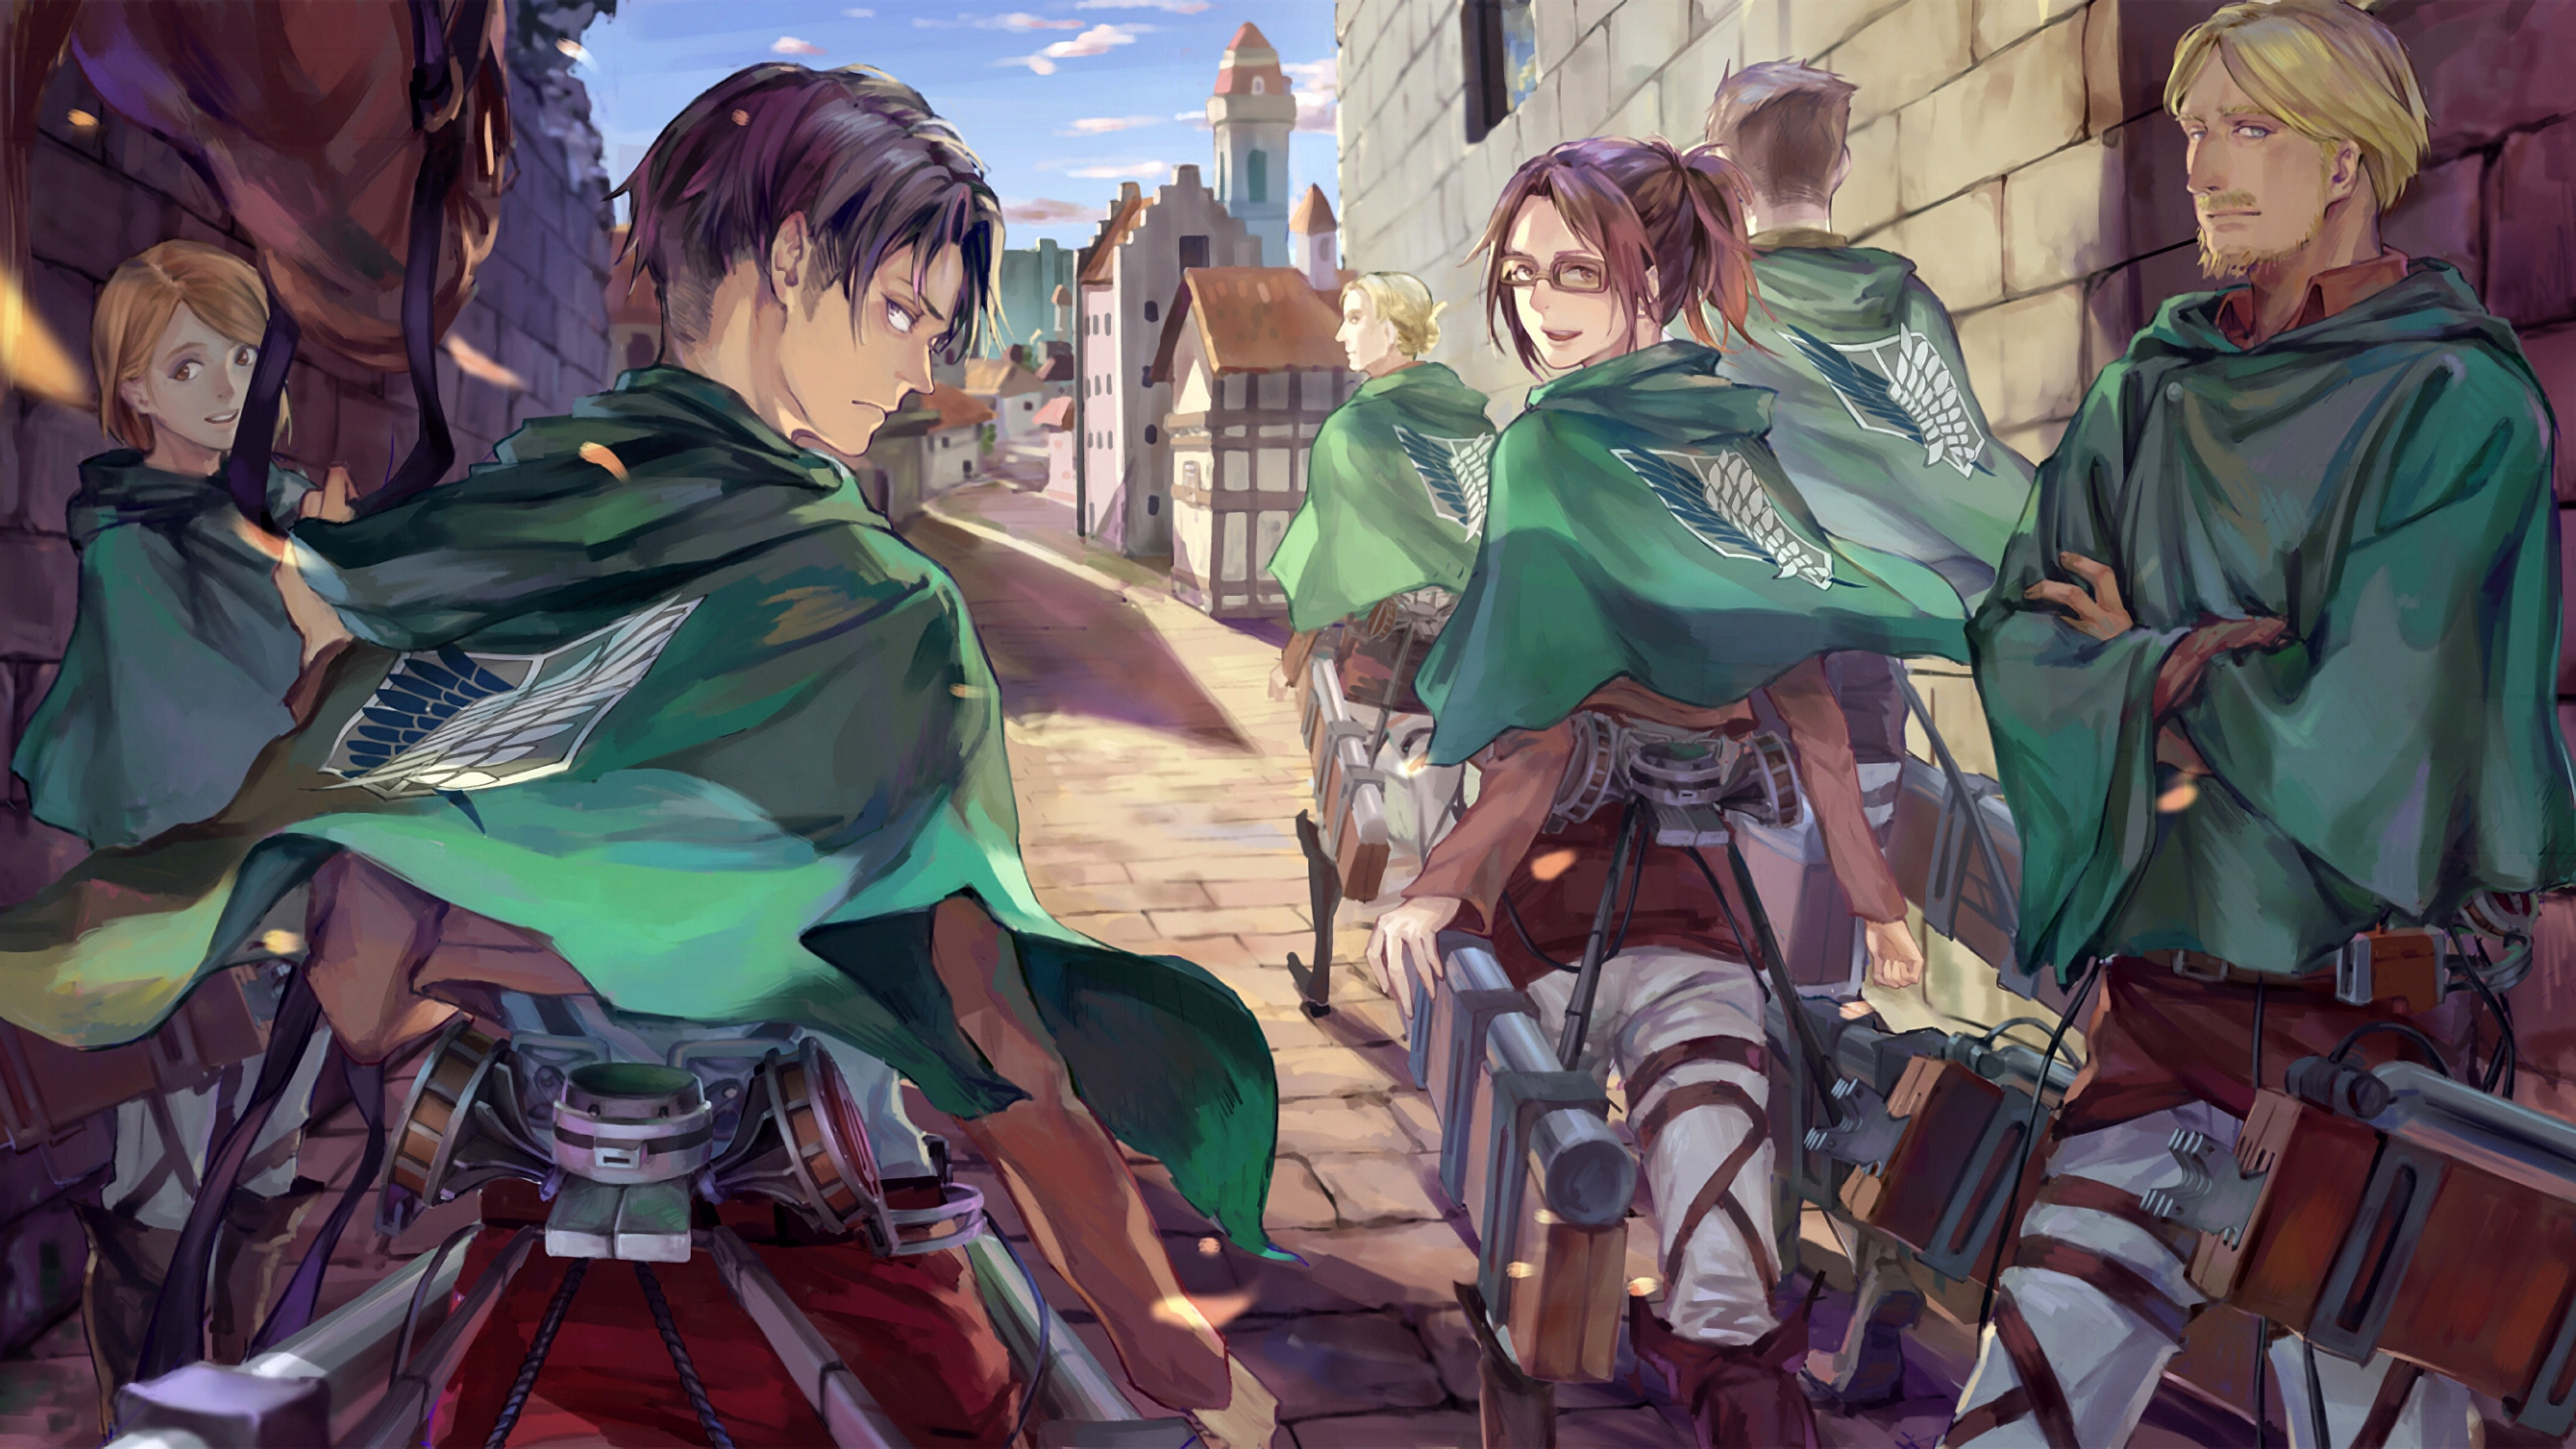 Levi Hange Zoe Survey Corps Attack On Titan 4k Wallpaper 20